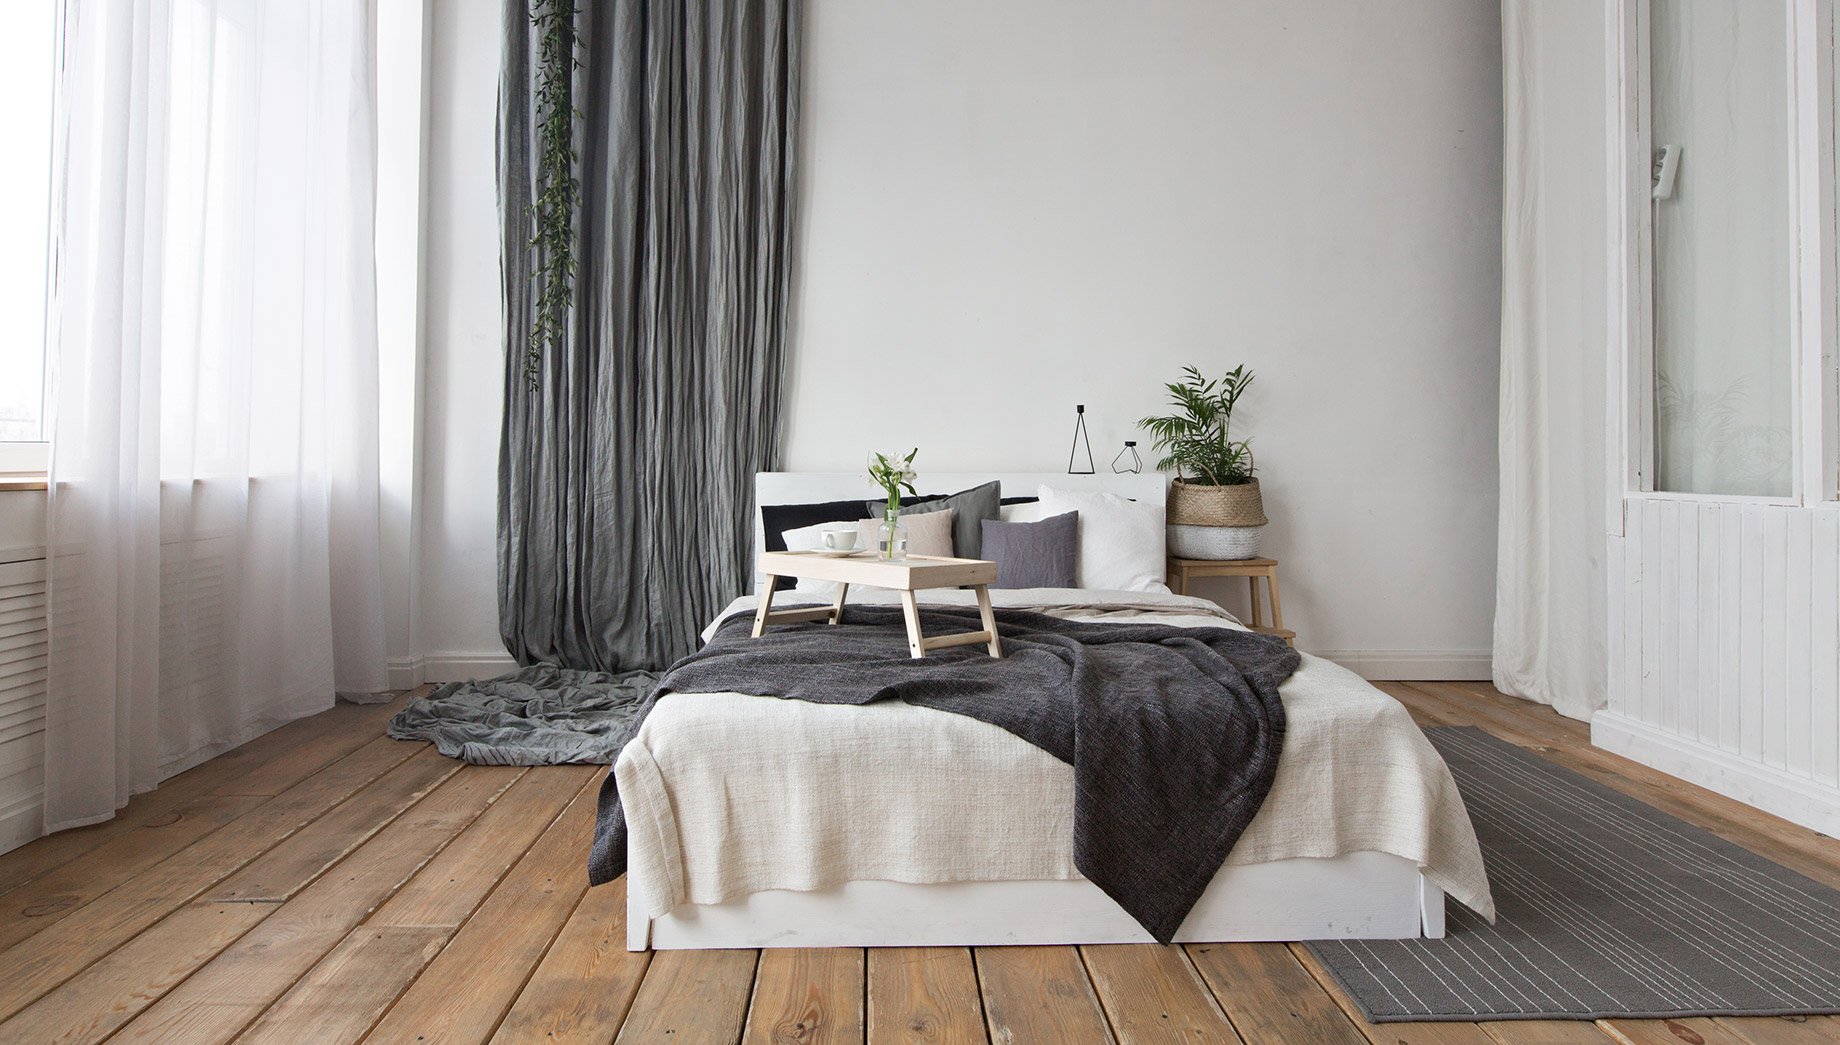 Bedroom with Natural Elements